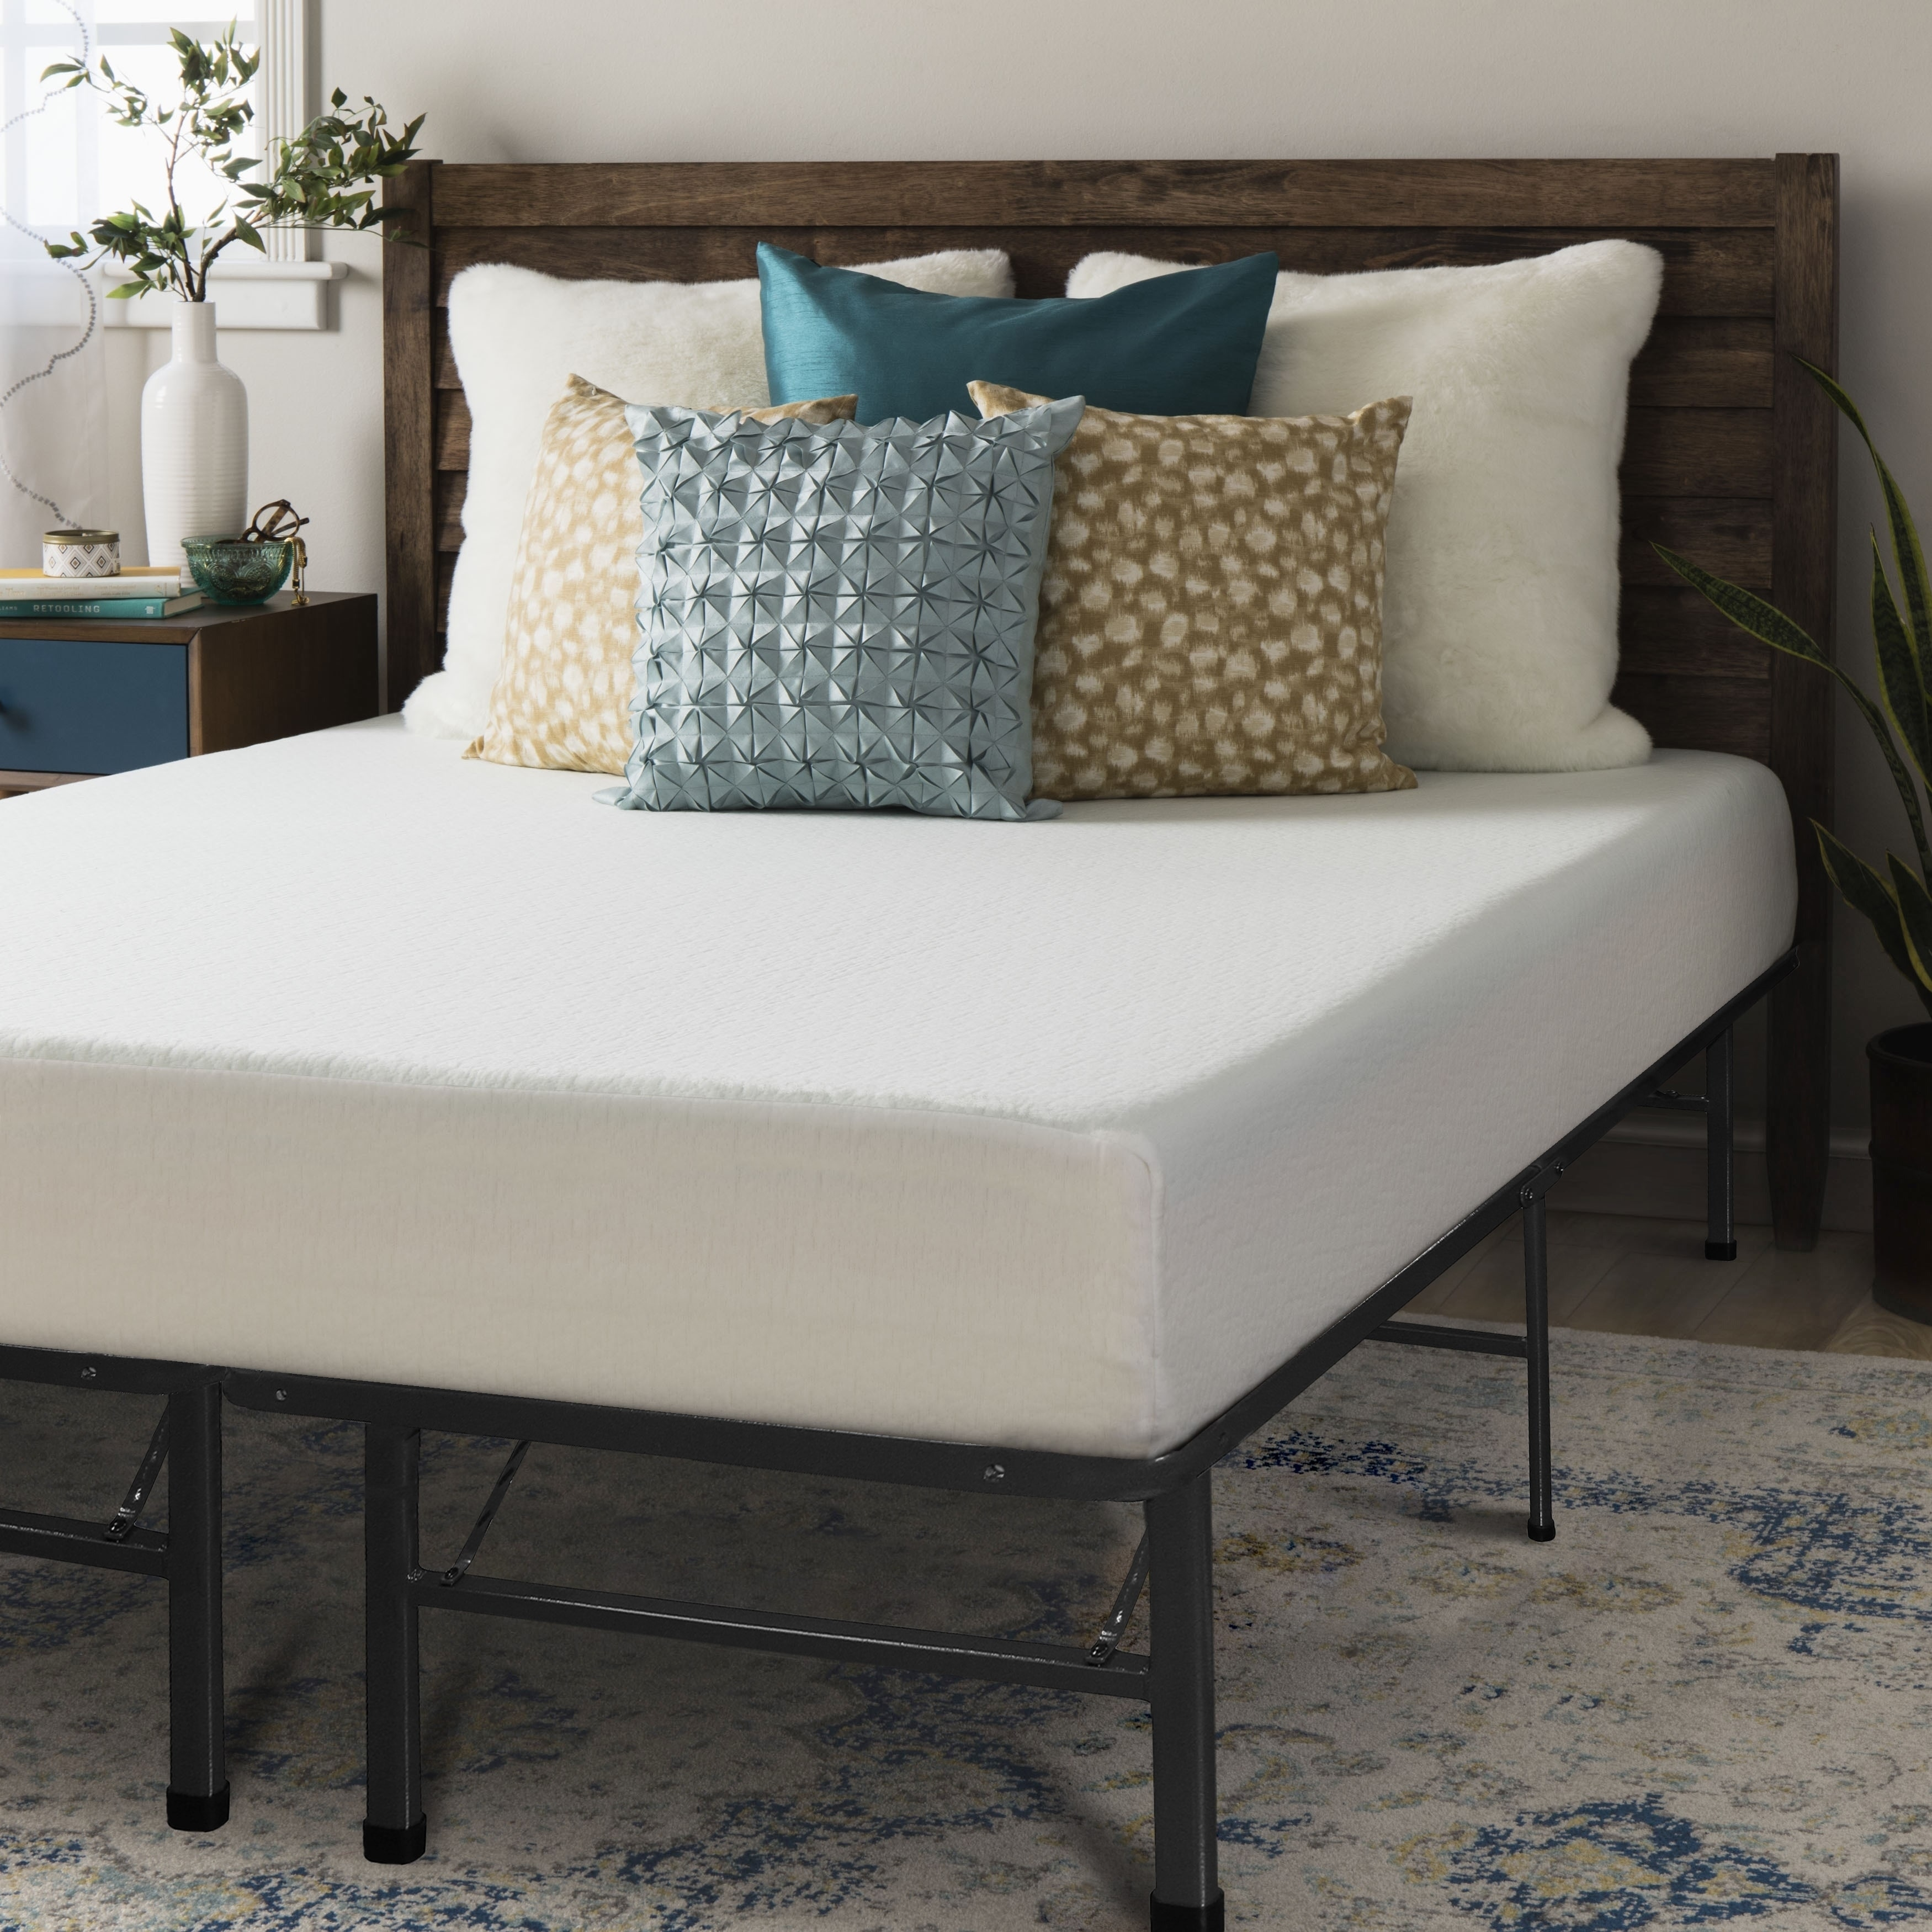 Crown Comfort 8 Inch Memory Foam Mattress With Bed Frame Set Free Shipping Today 12027636